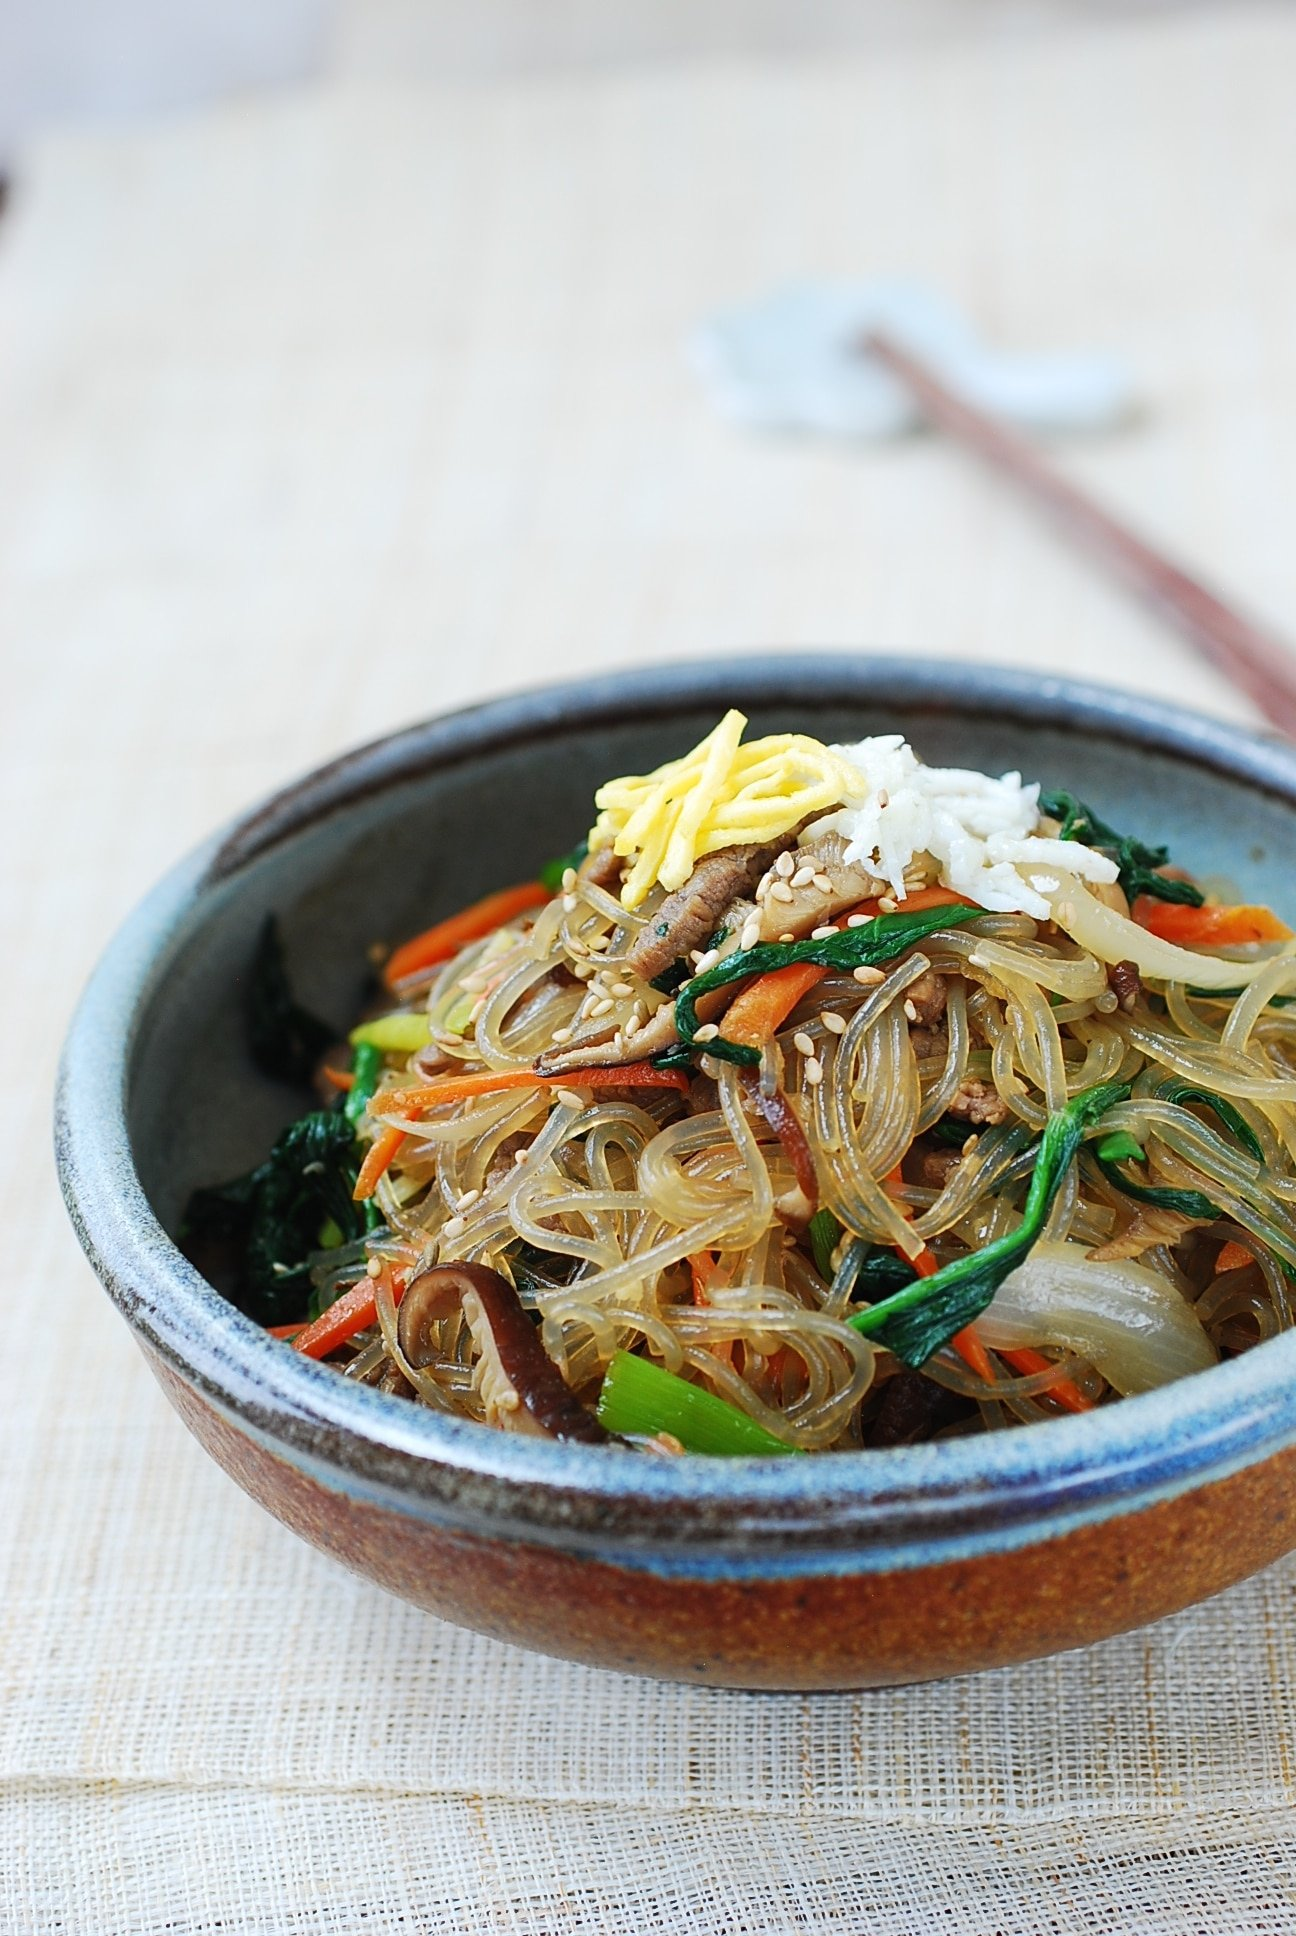 DSC 1060 1 - Japchae (Stir-Fried Starch Noodles with Beef and Vegetables)